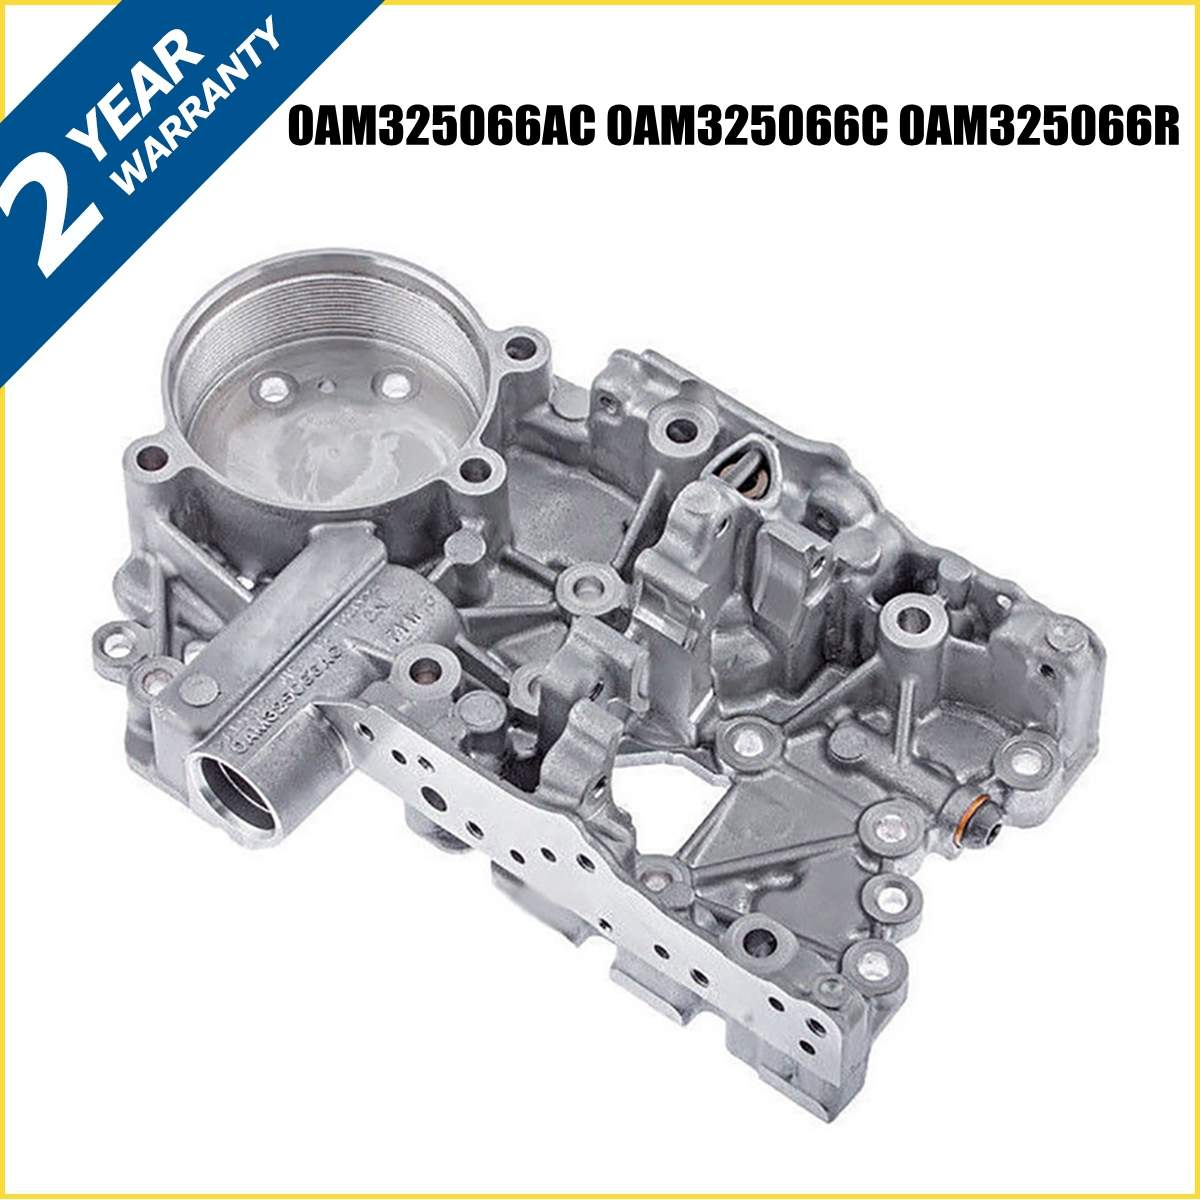 Valvebody DQ200 DSG Accumulator Housing Metal For Audi/V W Auto Replacement Parts 0AM325066AC 0AM325066C 0AM325066R